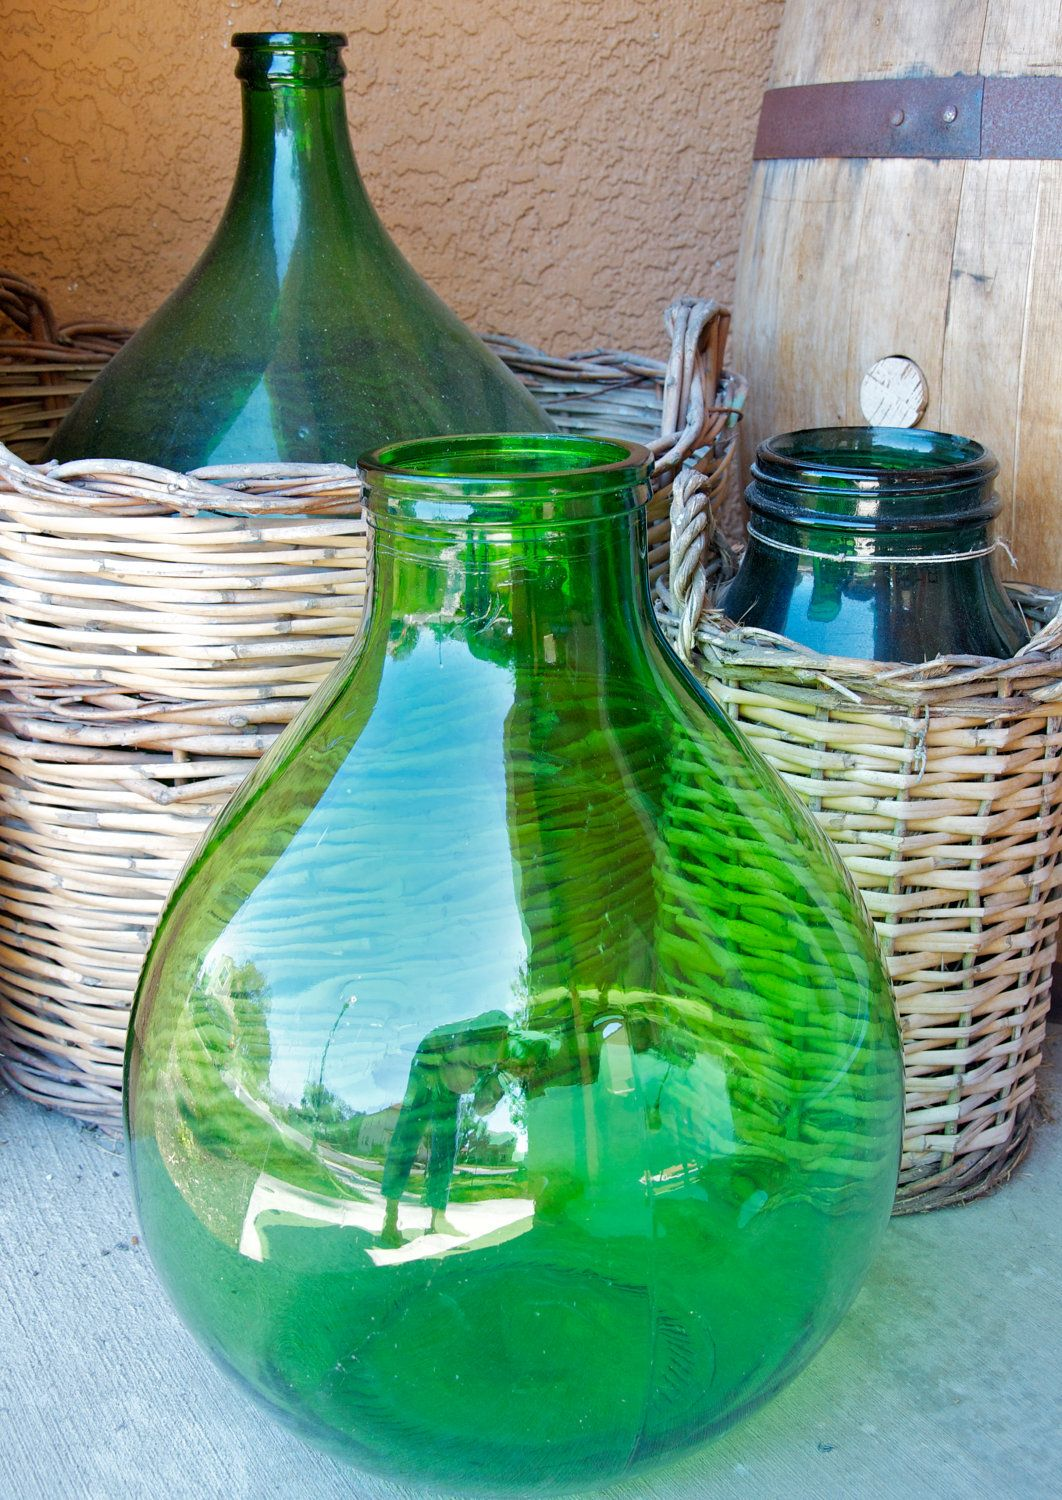 Large Vintage Italian Demijohn Unique Wide Mouth Green Glass